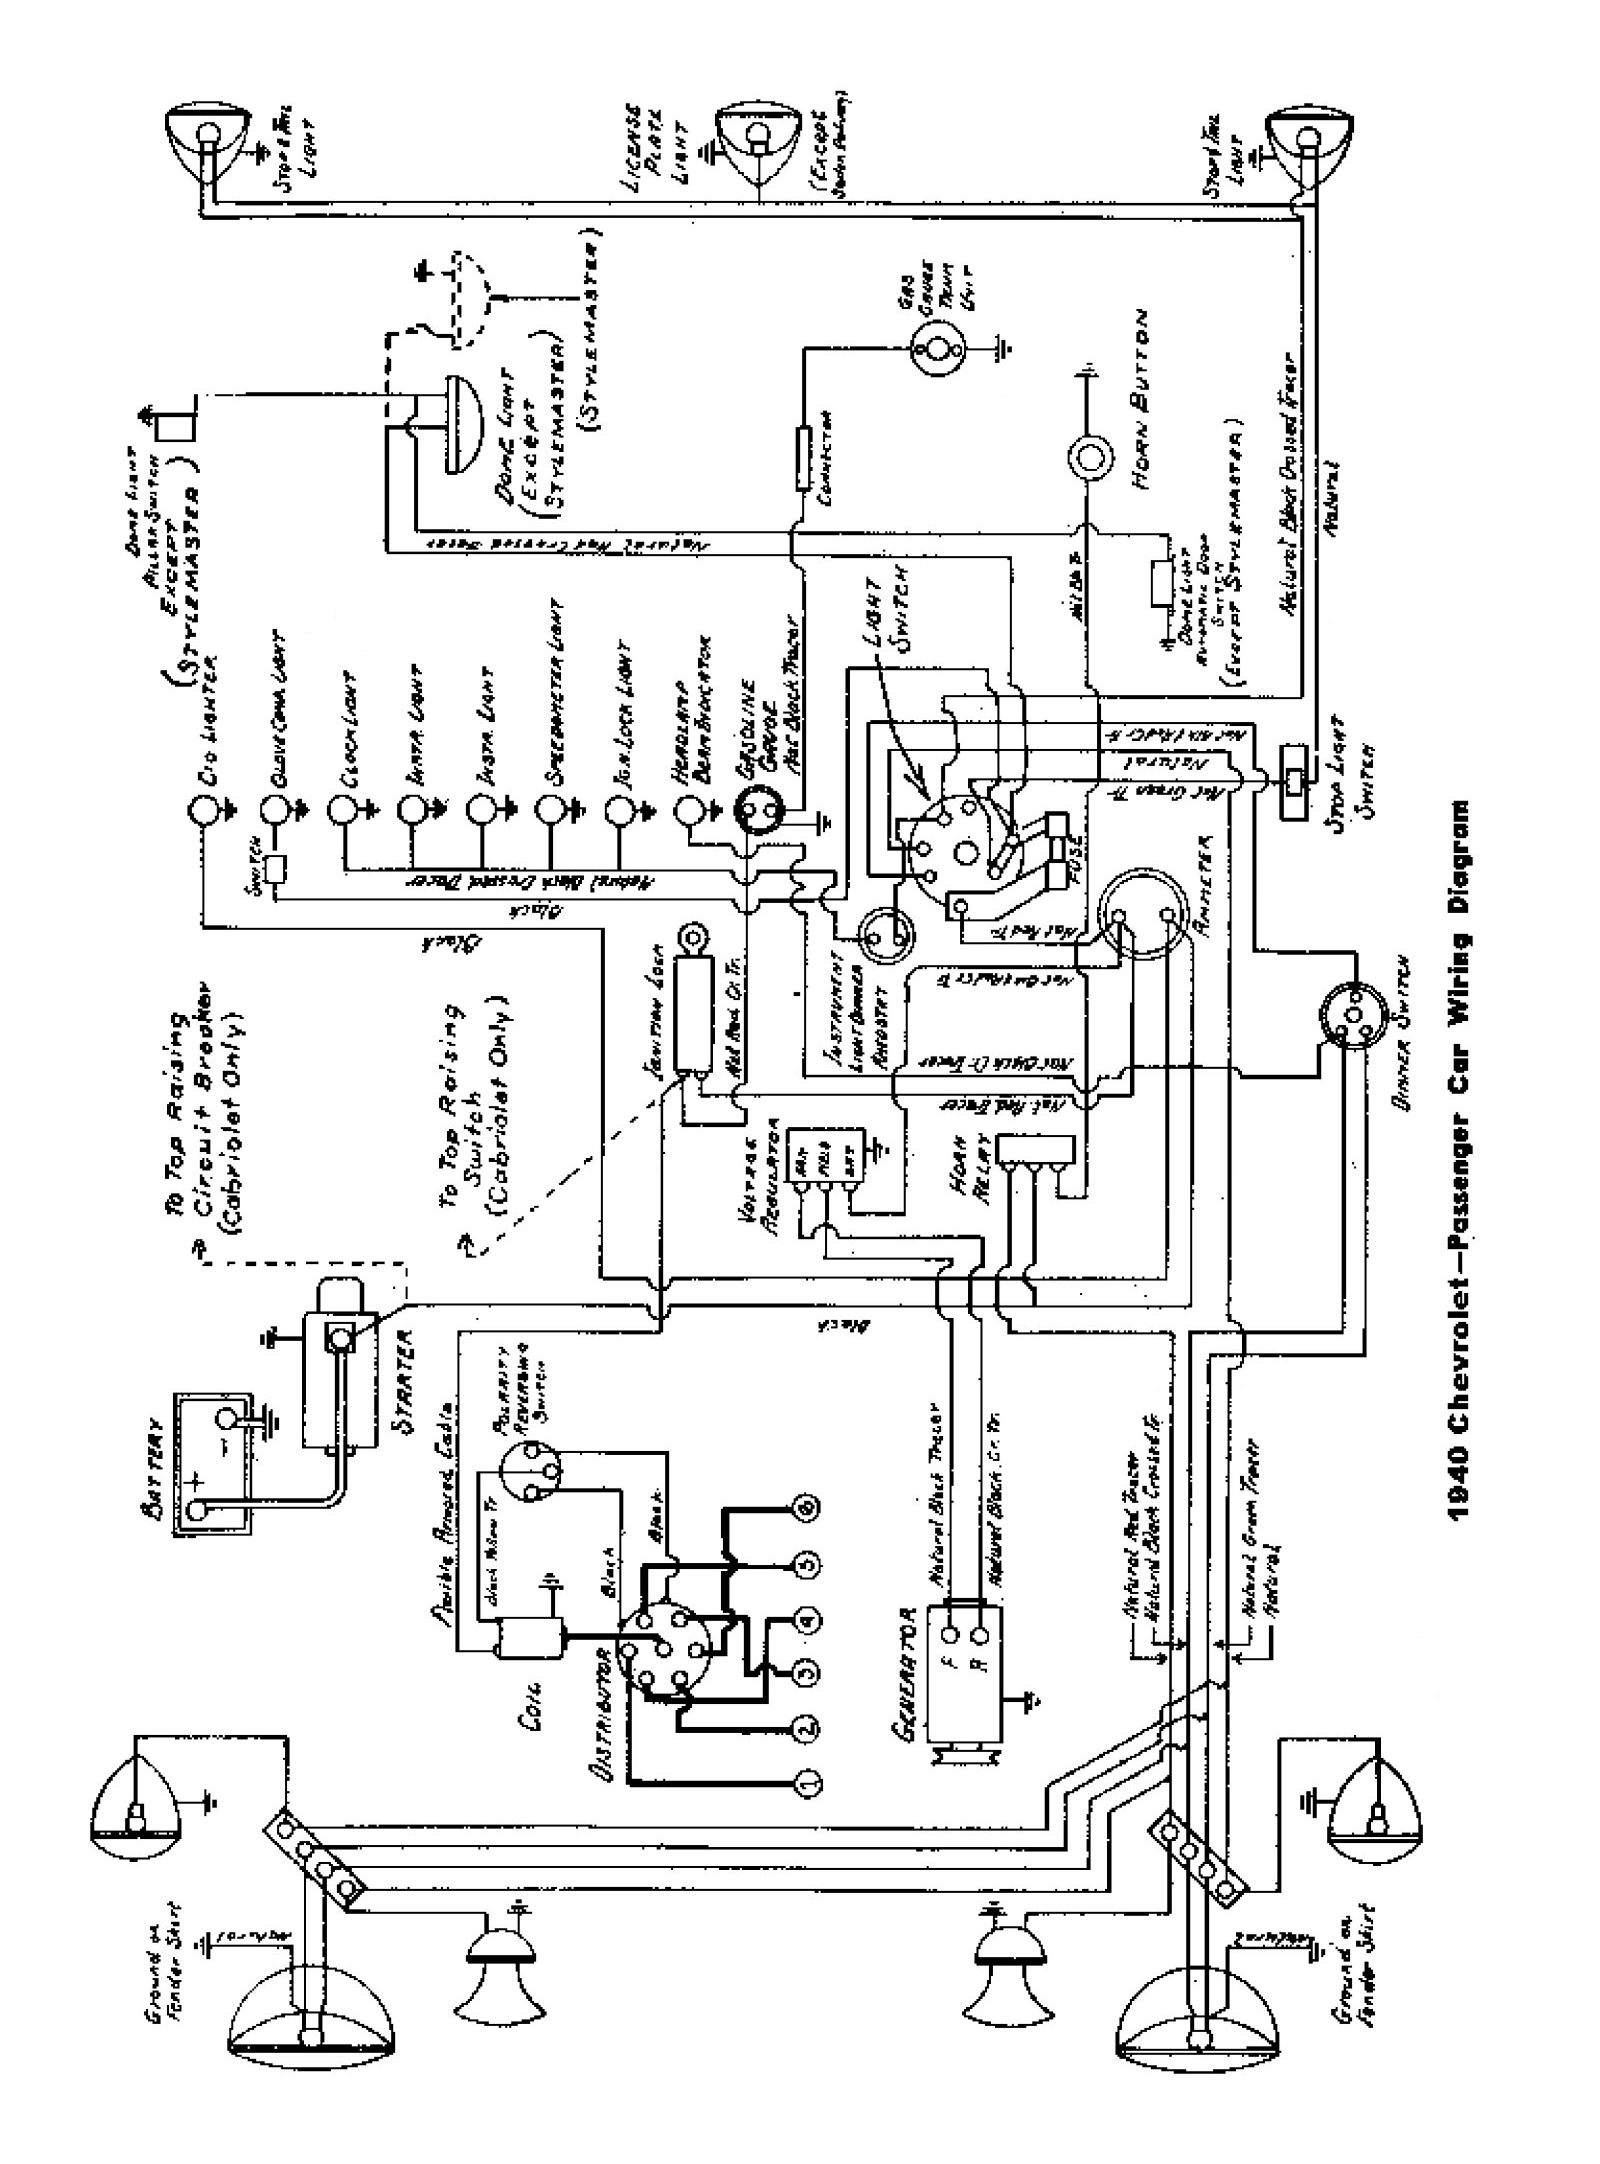 40car chevy wiring diagrams international truck wiring diagram schematic at edmiracle.co